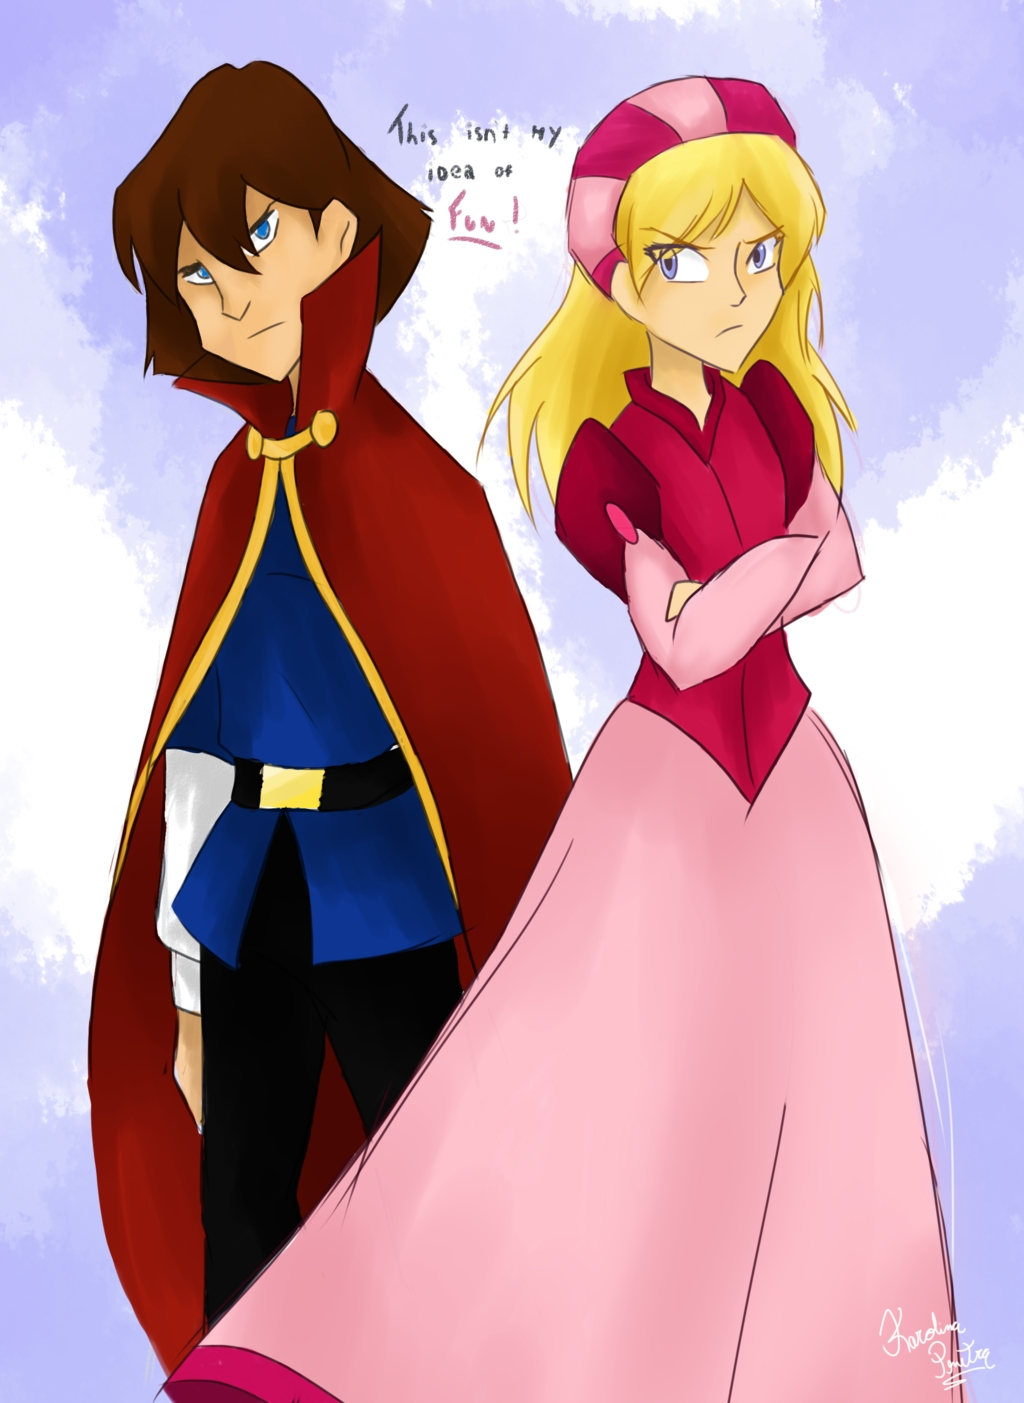 10 Fabulous Swan Princess This Is My Idea this isnt my idea of funtaiara sama on deviantart 1 2020